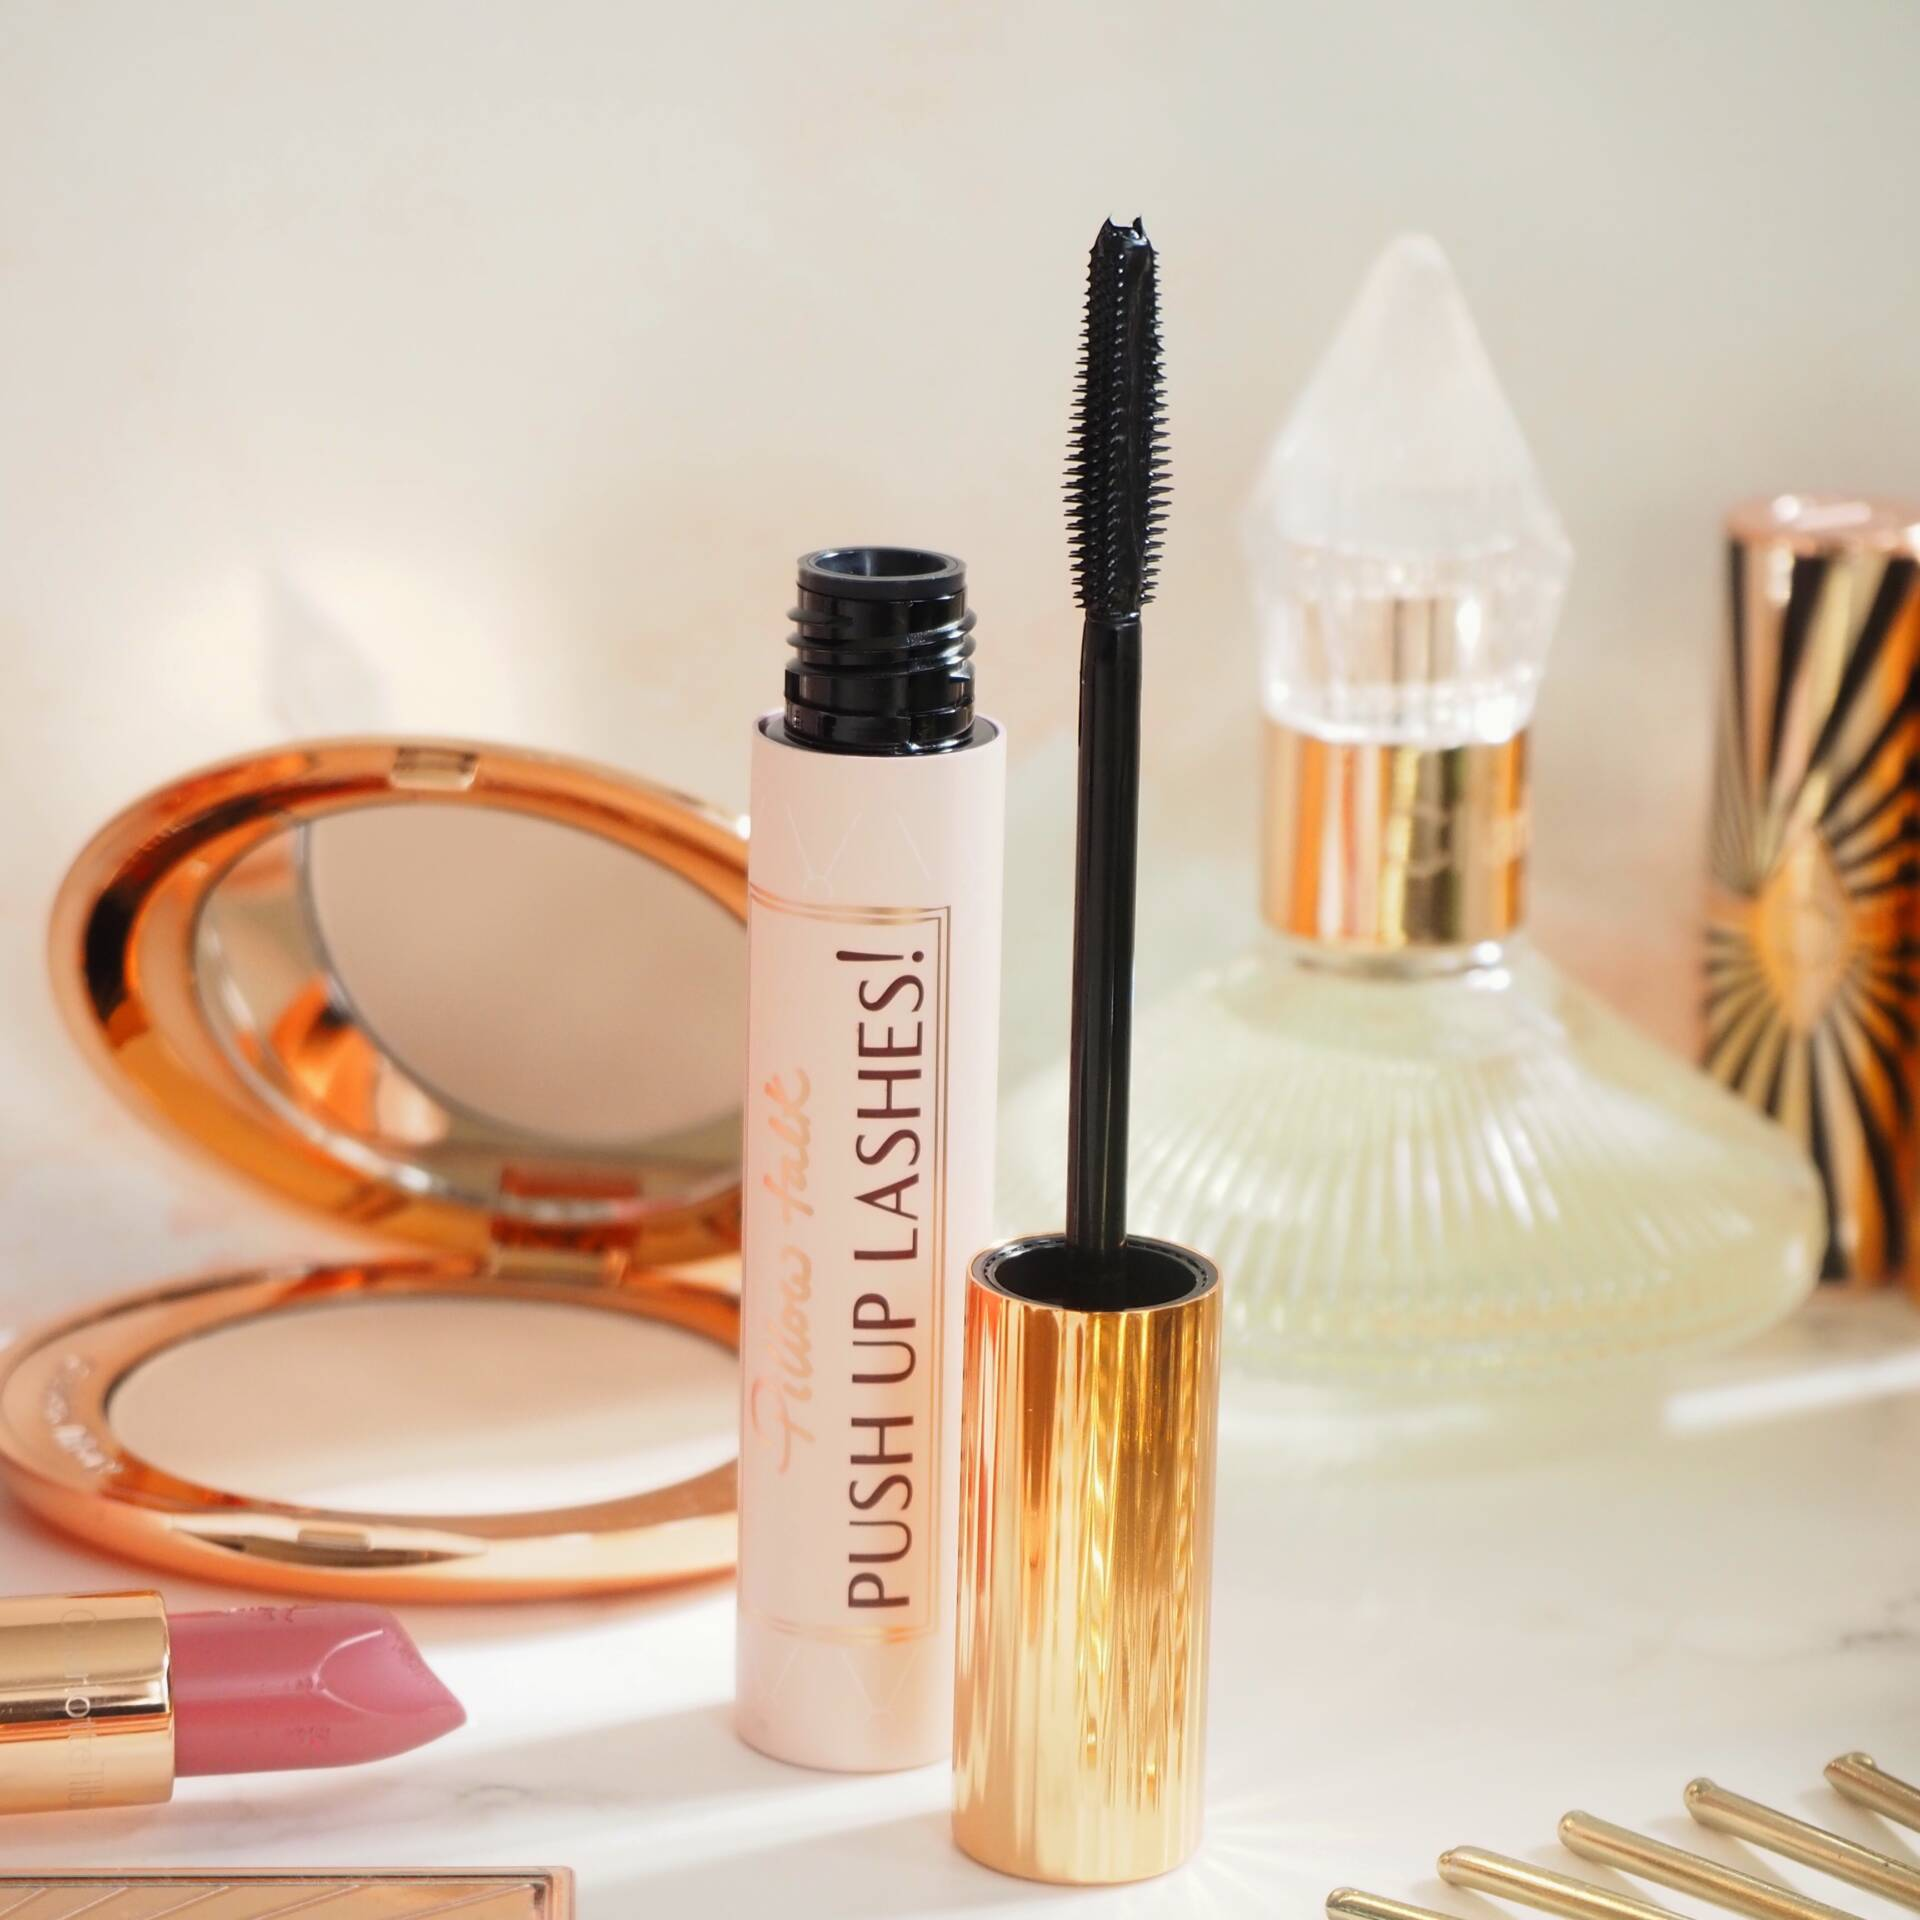 Charlotte Tilbury Pillow Talk Push Up Lashes Mascara Review and Comparisons